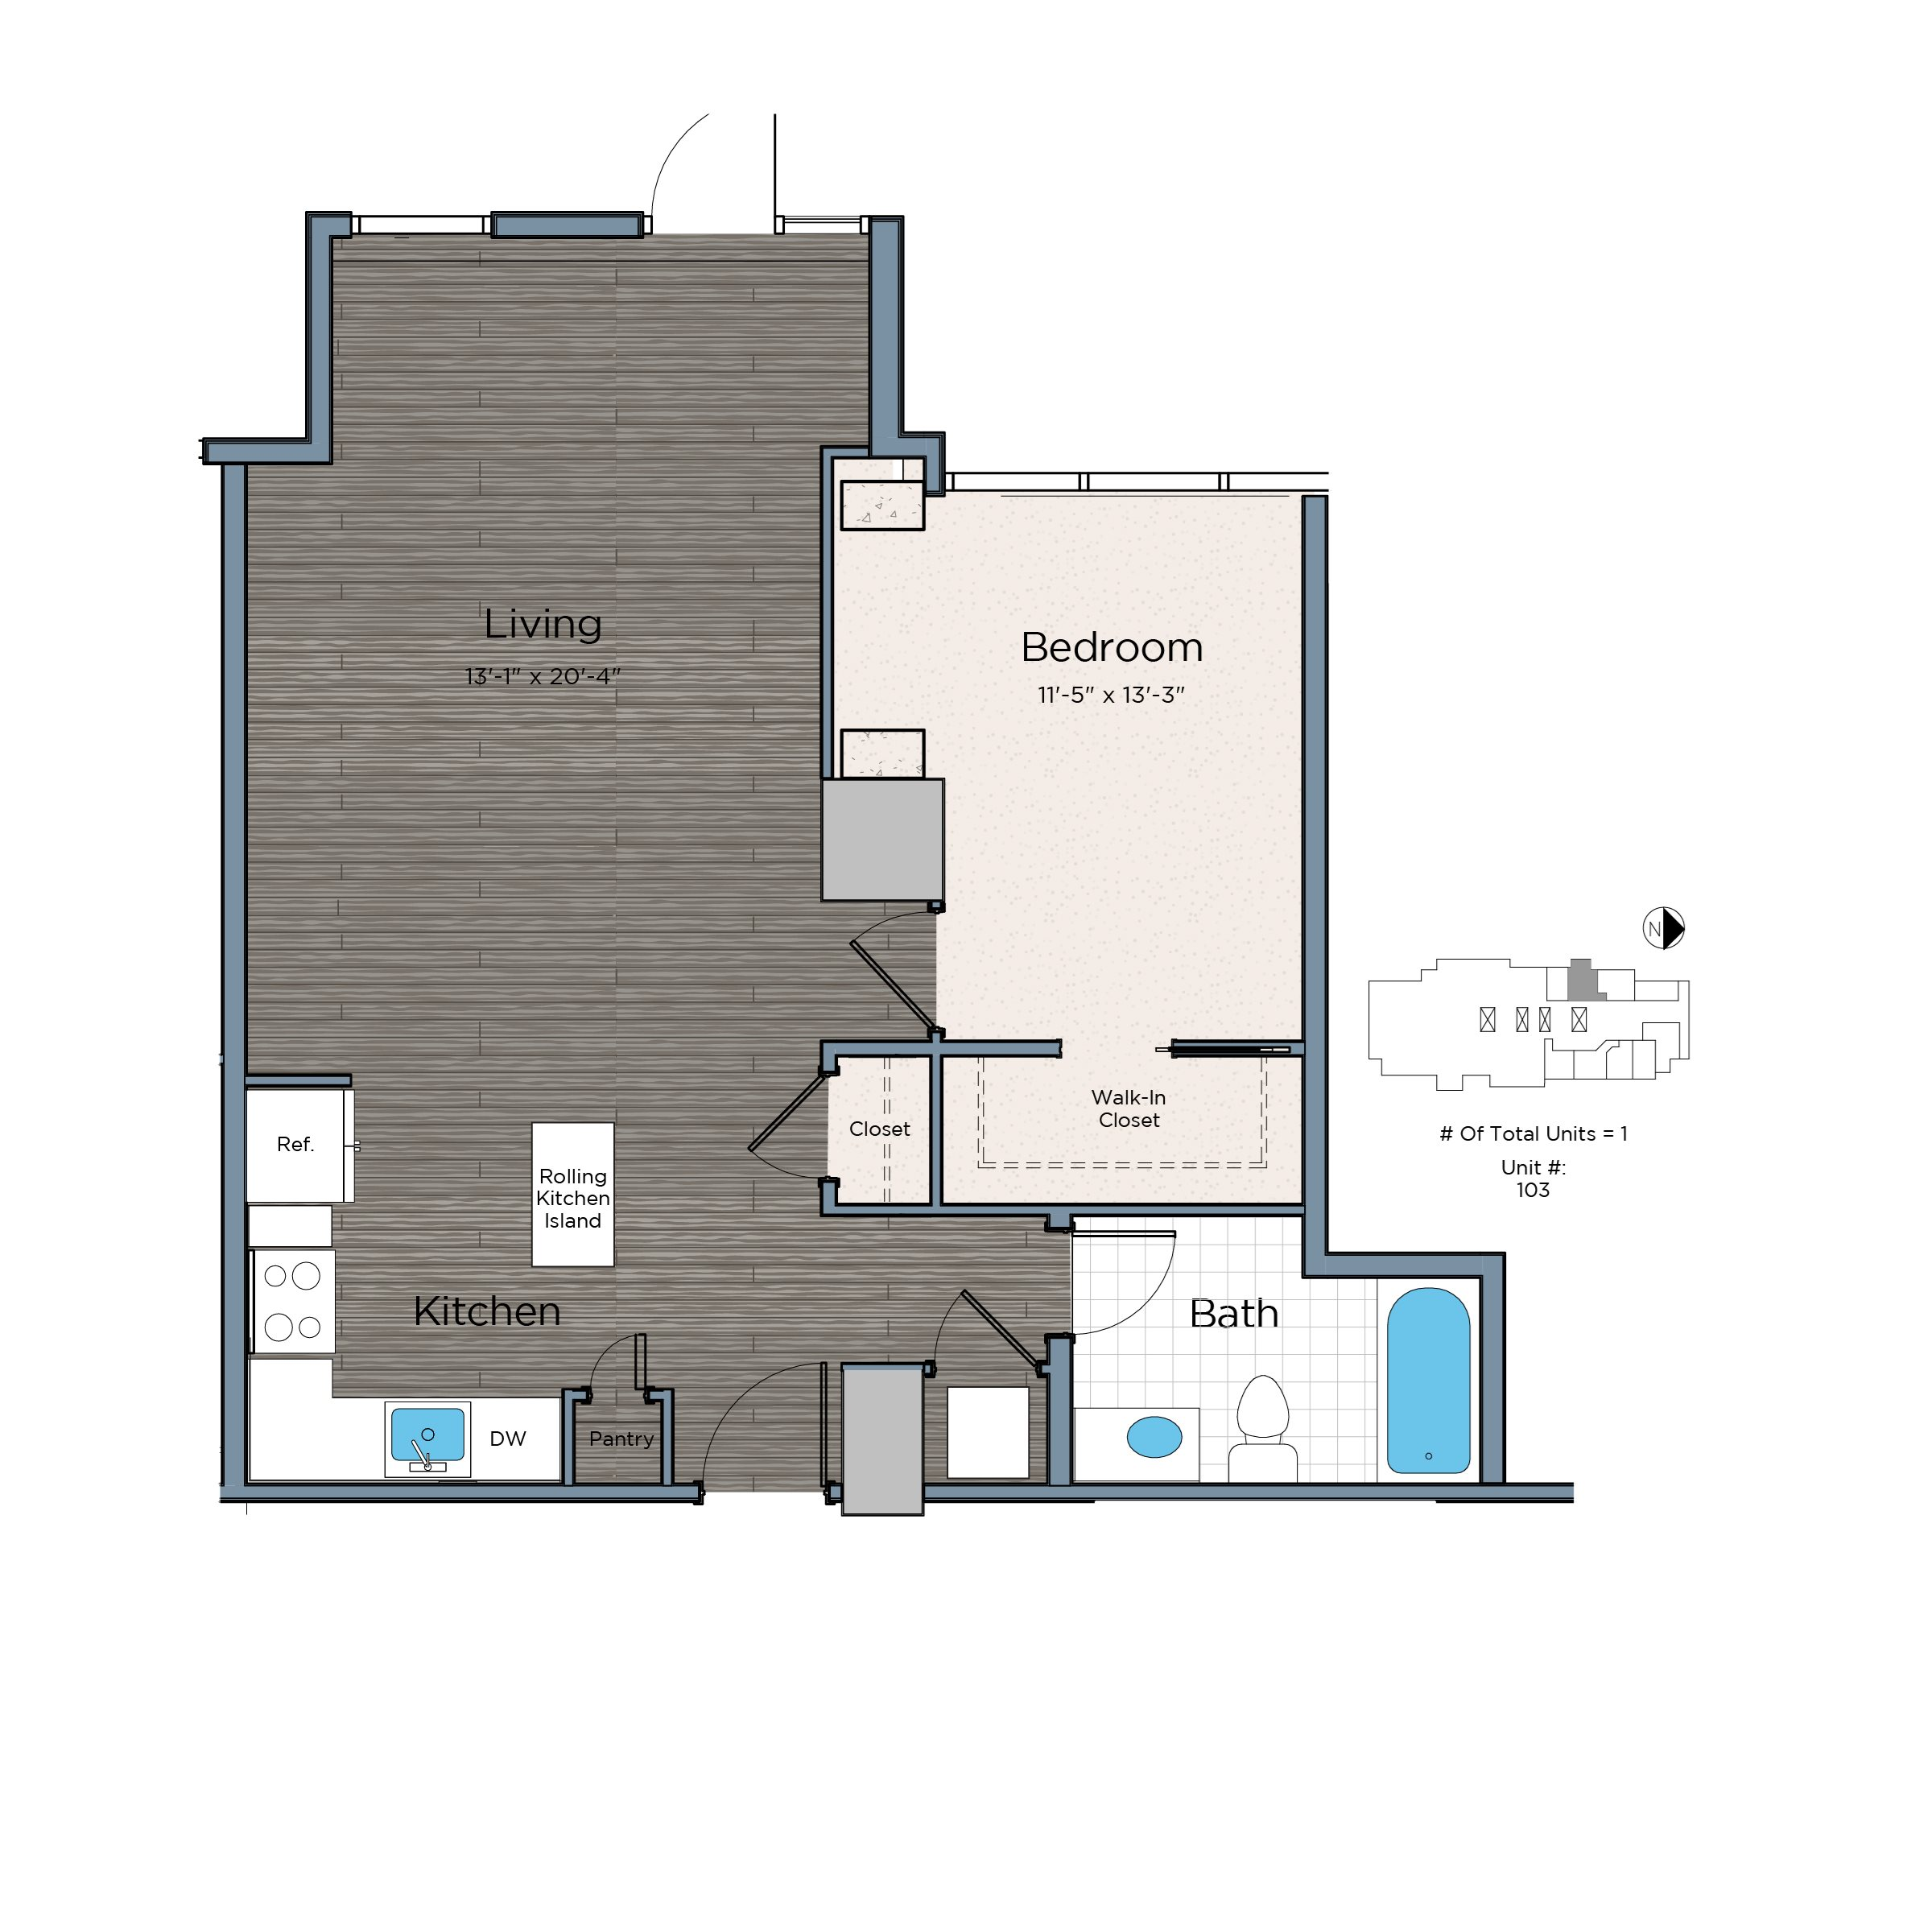 affordable 1 bedroom apartments in dc. contact affordable 1 bedroom apartments in dc